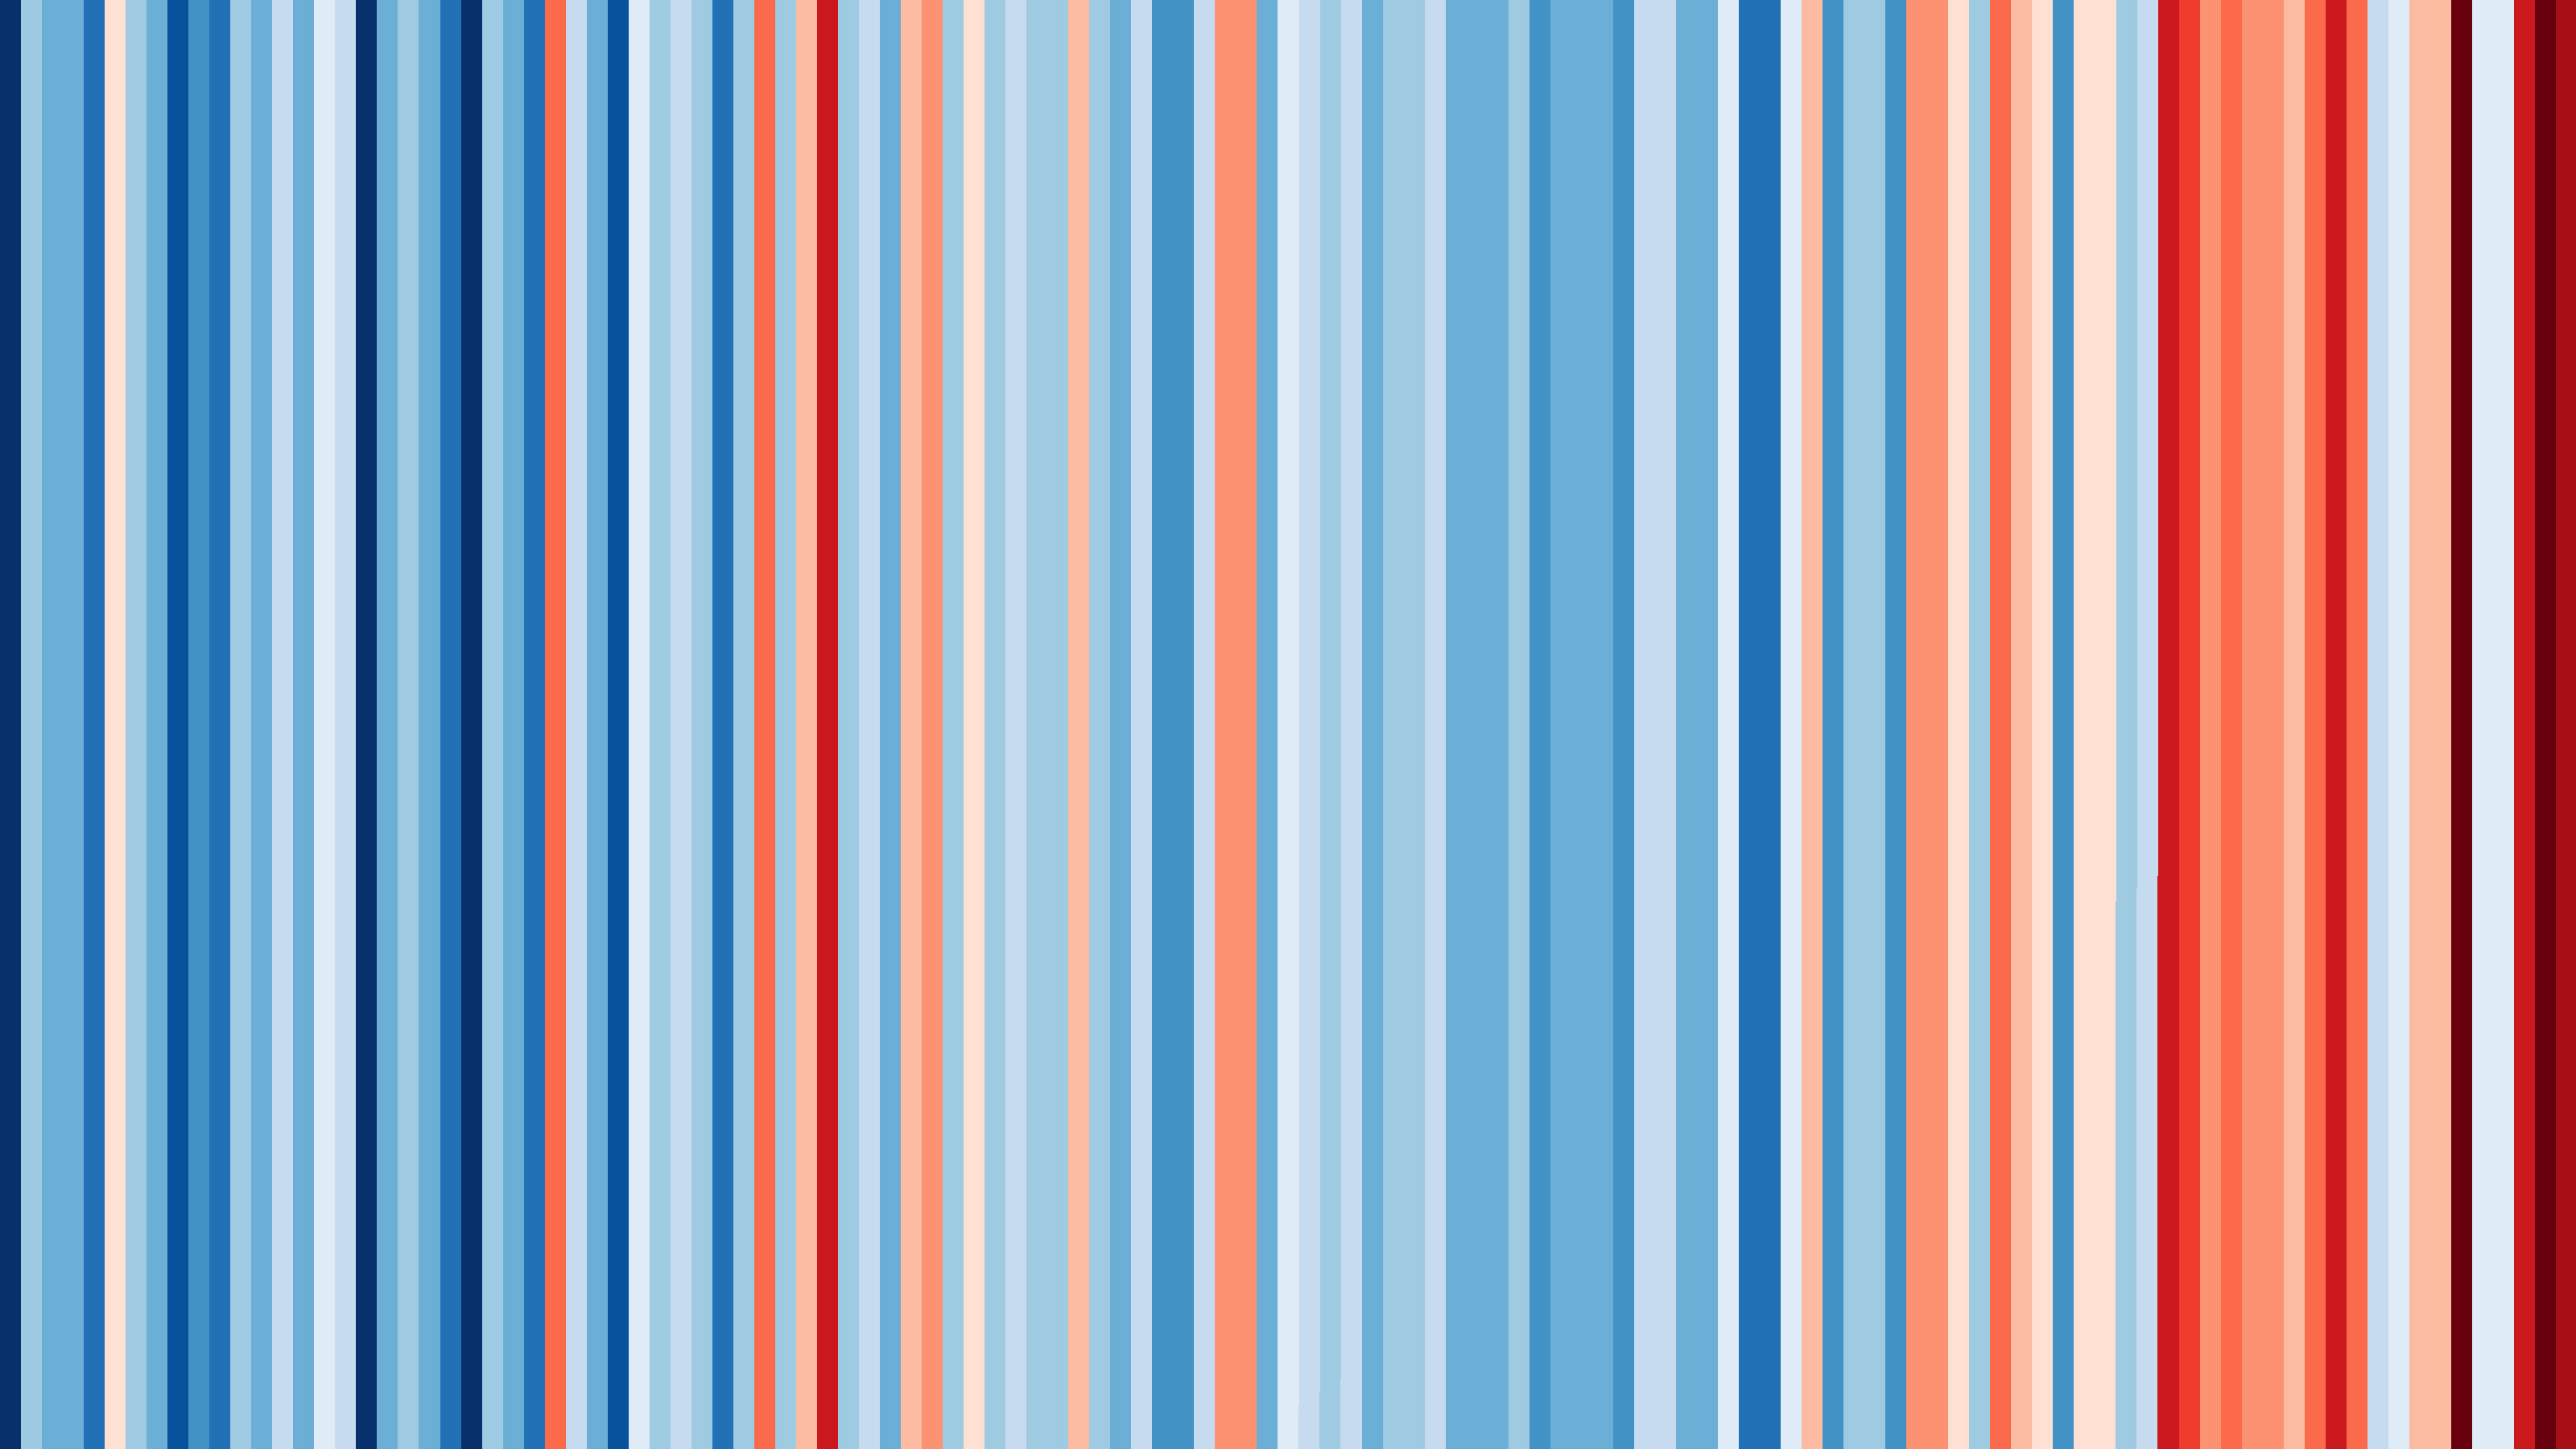 Annual temperatures for the contiguous United States from 1895 to 2017. The color scale goes from 50.2°F (dark blue) to 55.0°F (dark red).